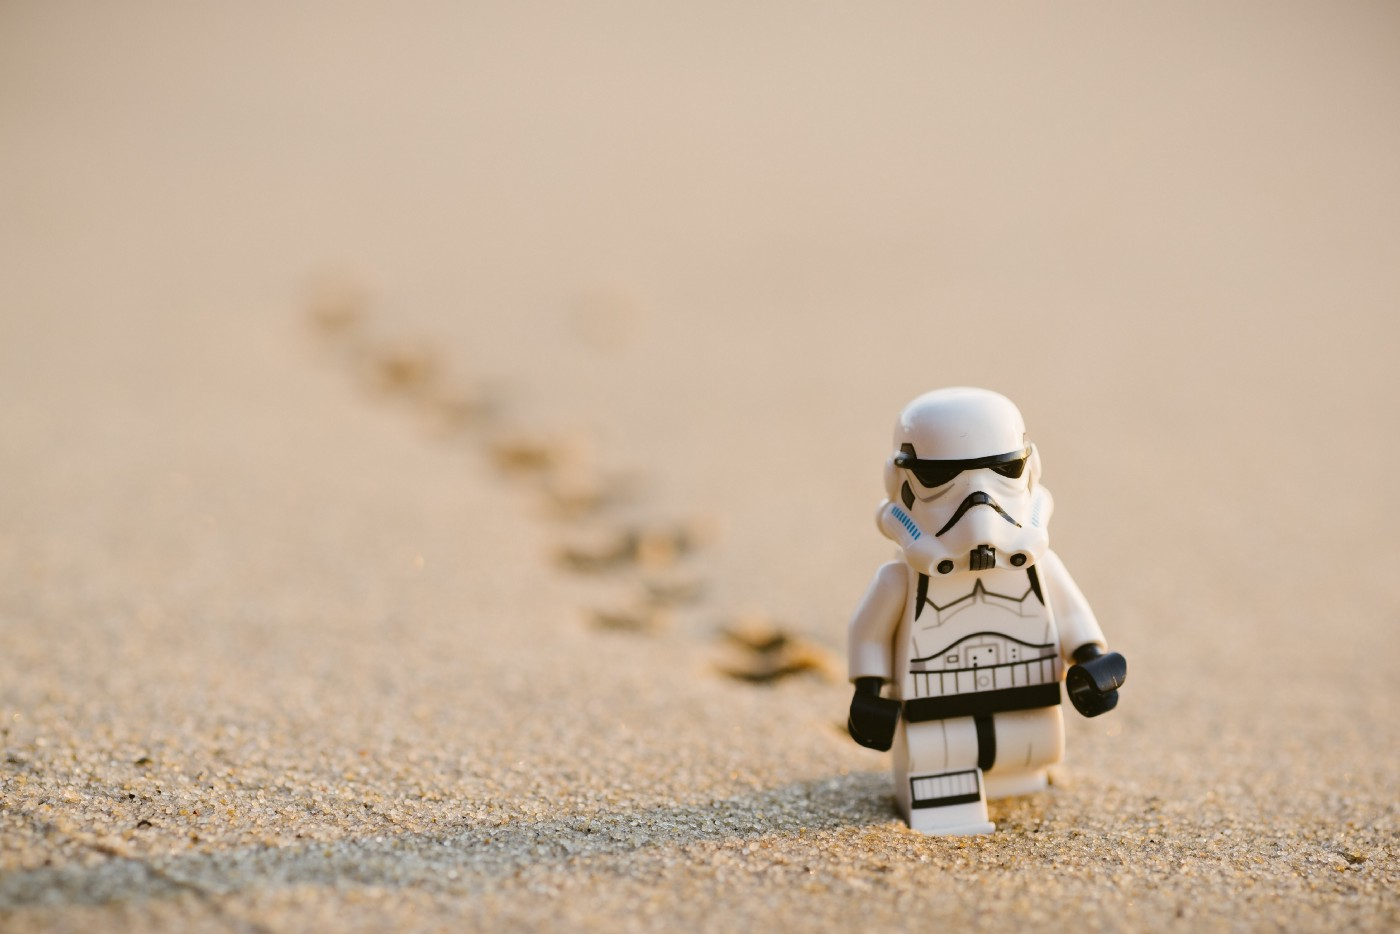 A tiny startrooper toy placed on the sand